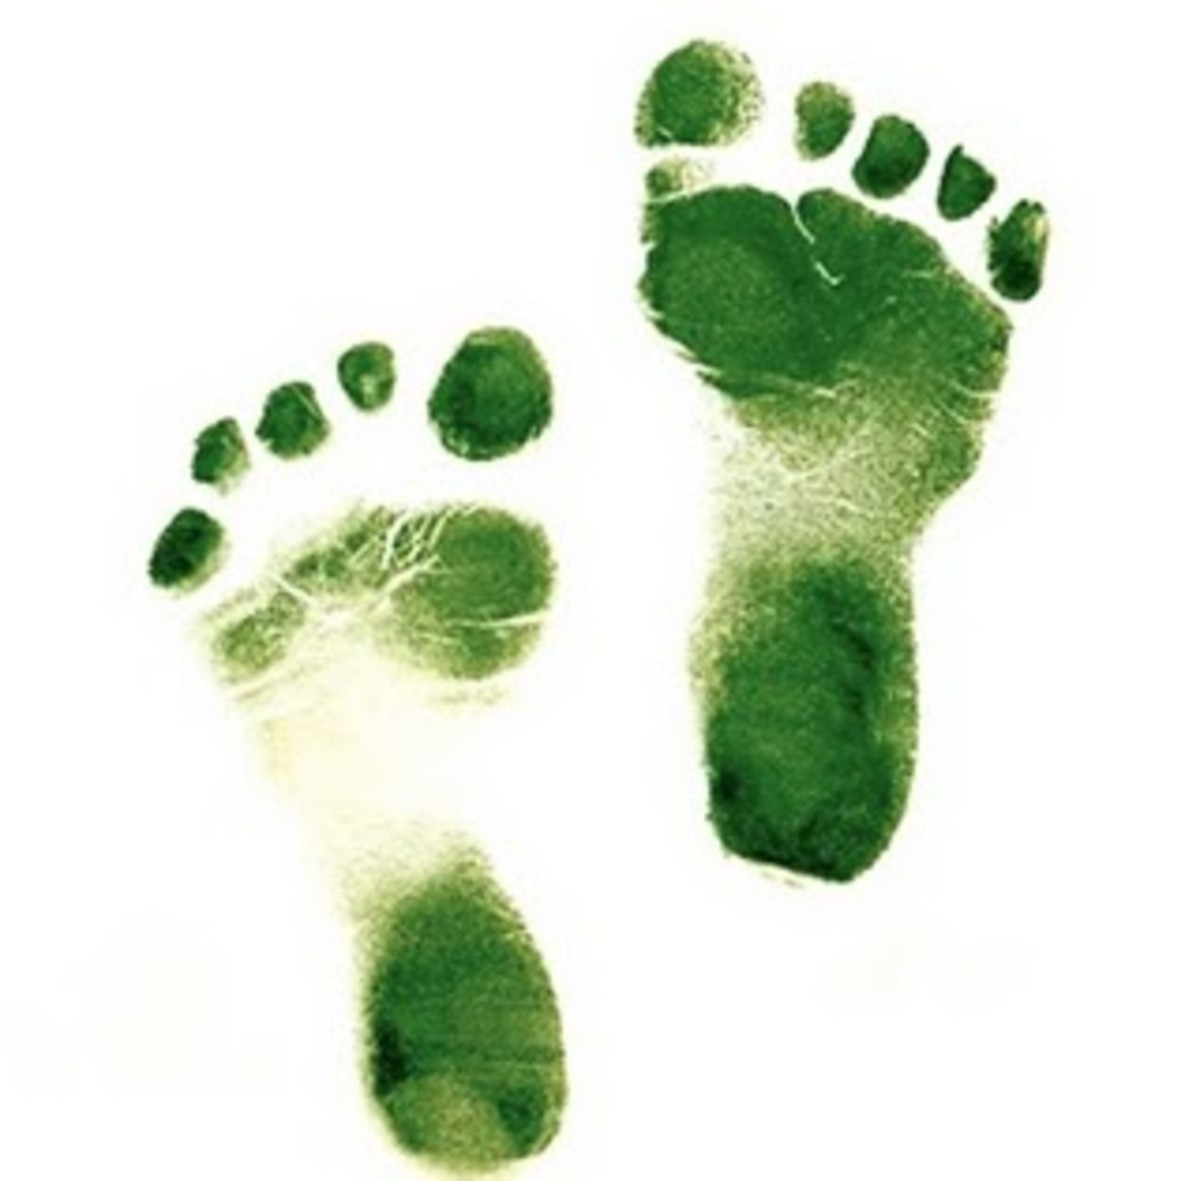 Green paint and baby's feet can be used to decorate a onesie or card